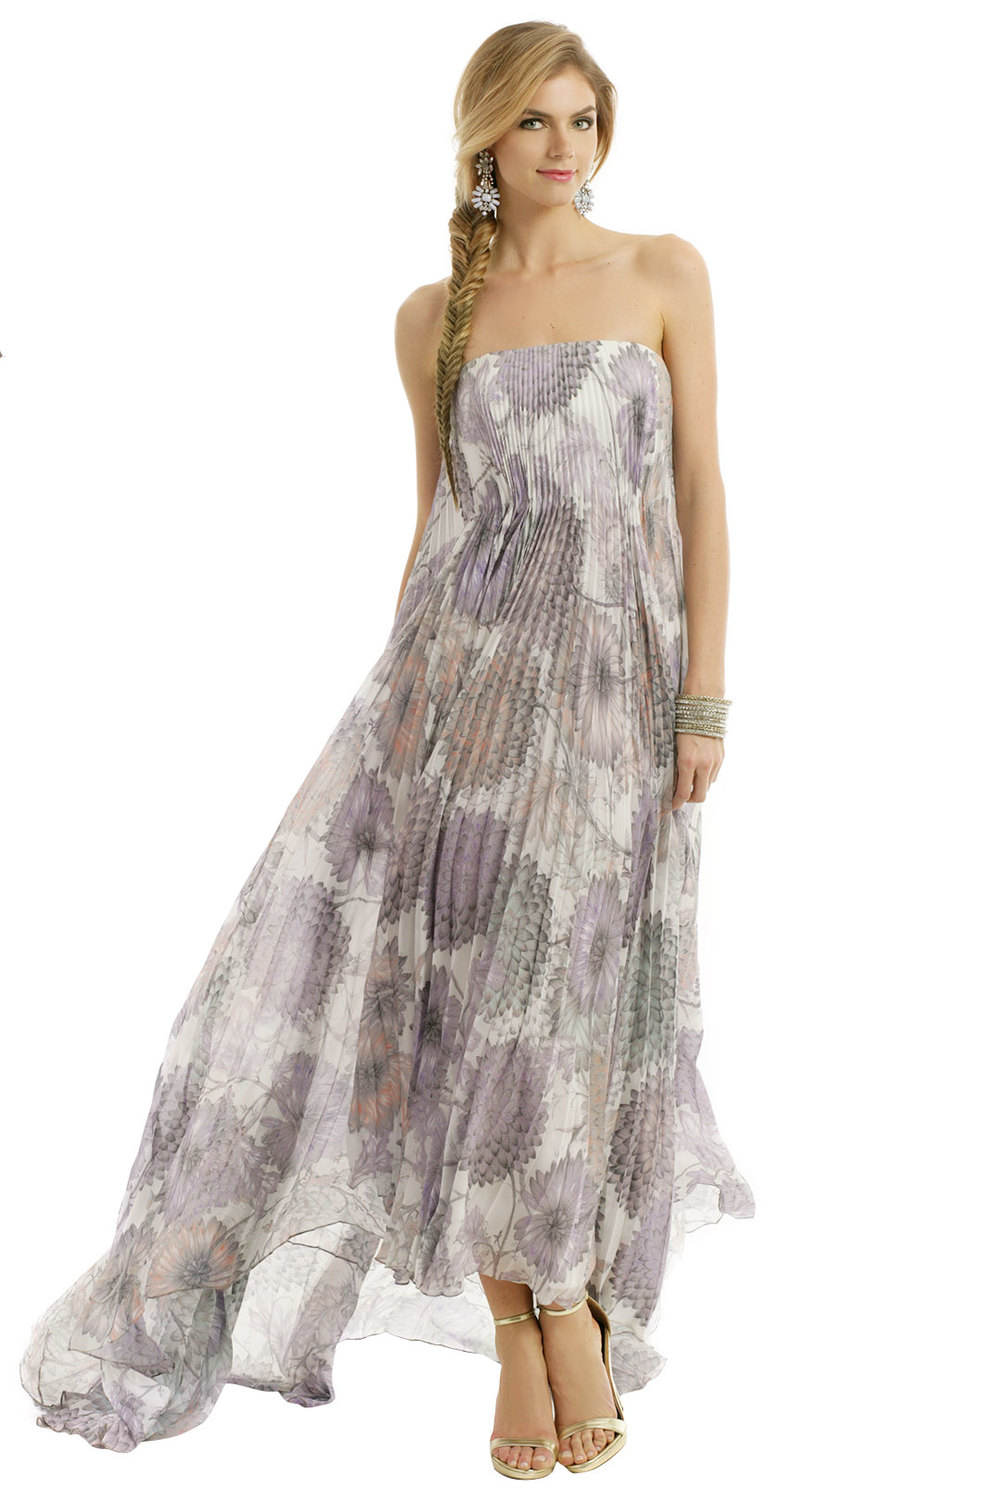 Heather floral printed maxi by Badgley Mischka. Rent the Runway. $160 rental.